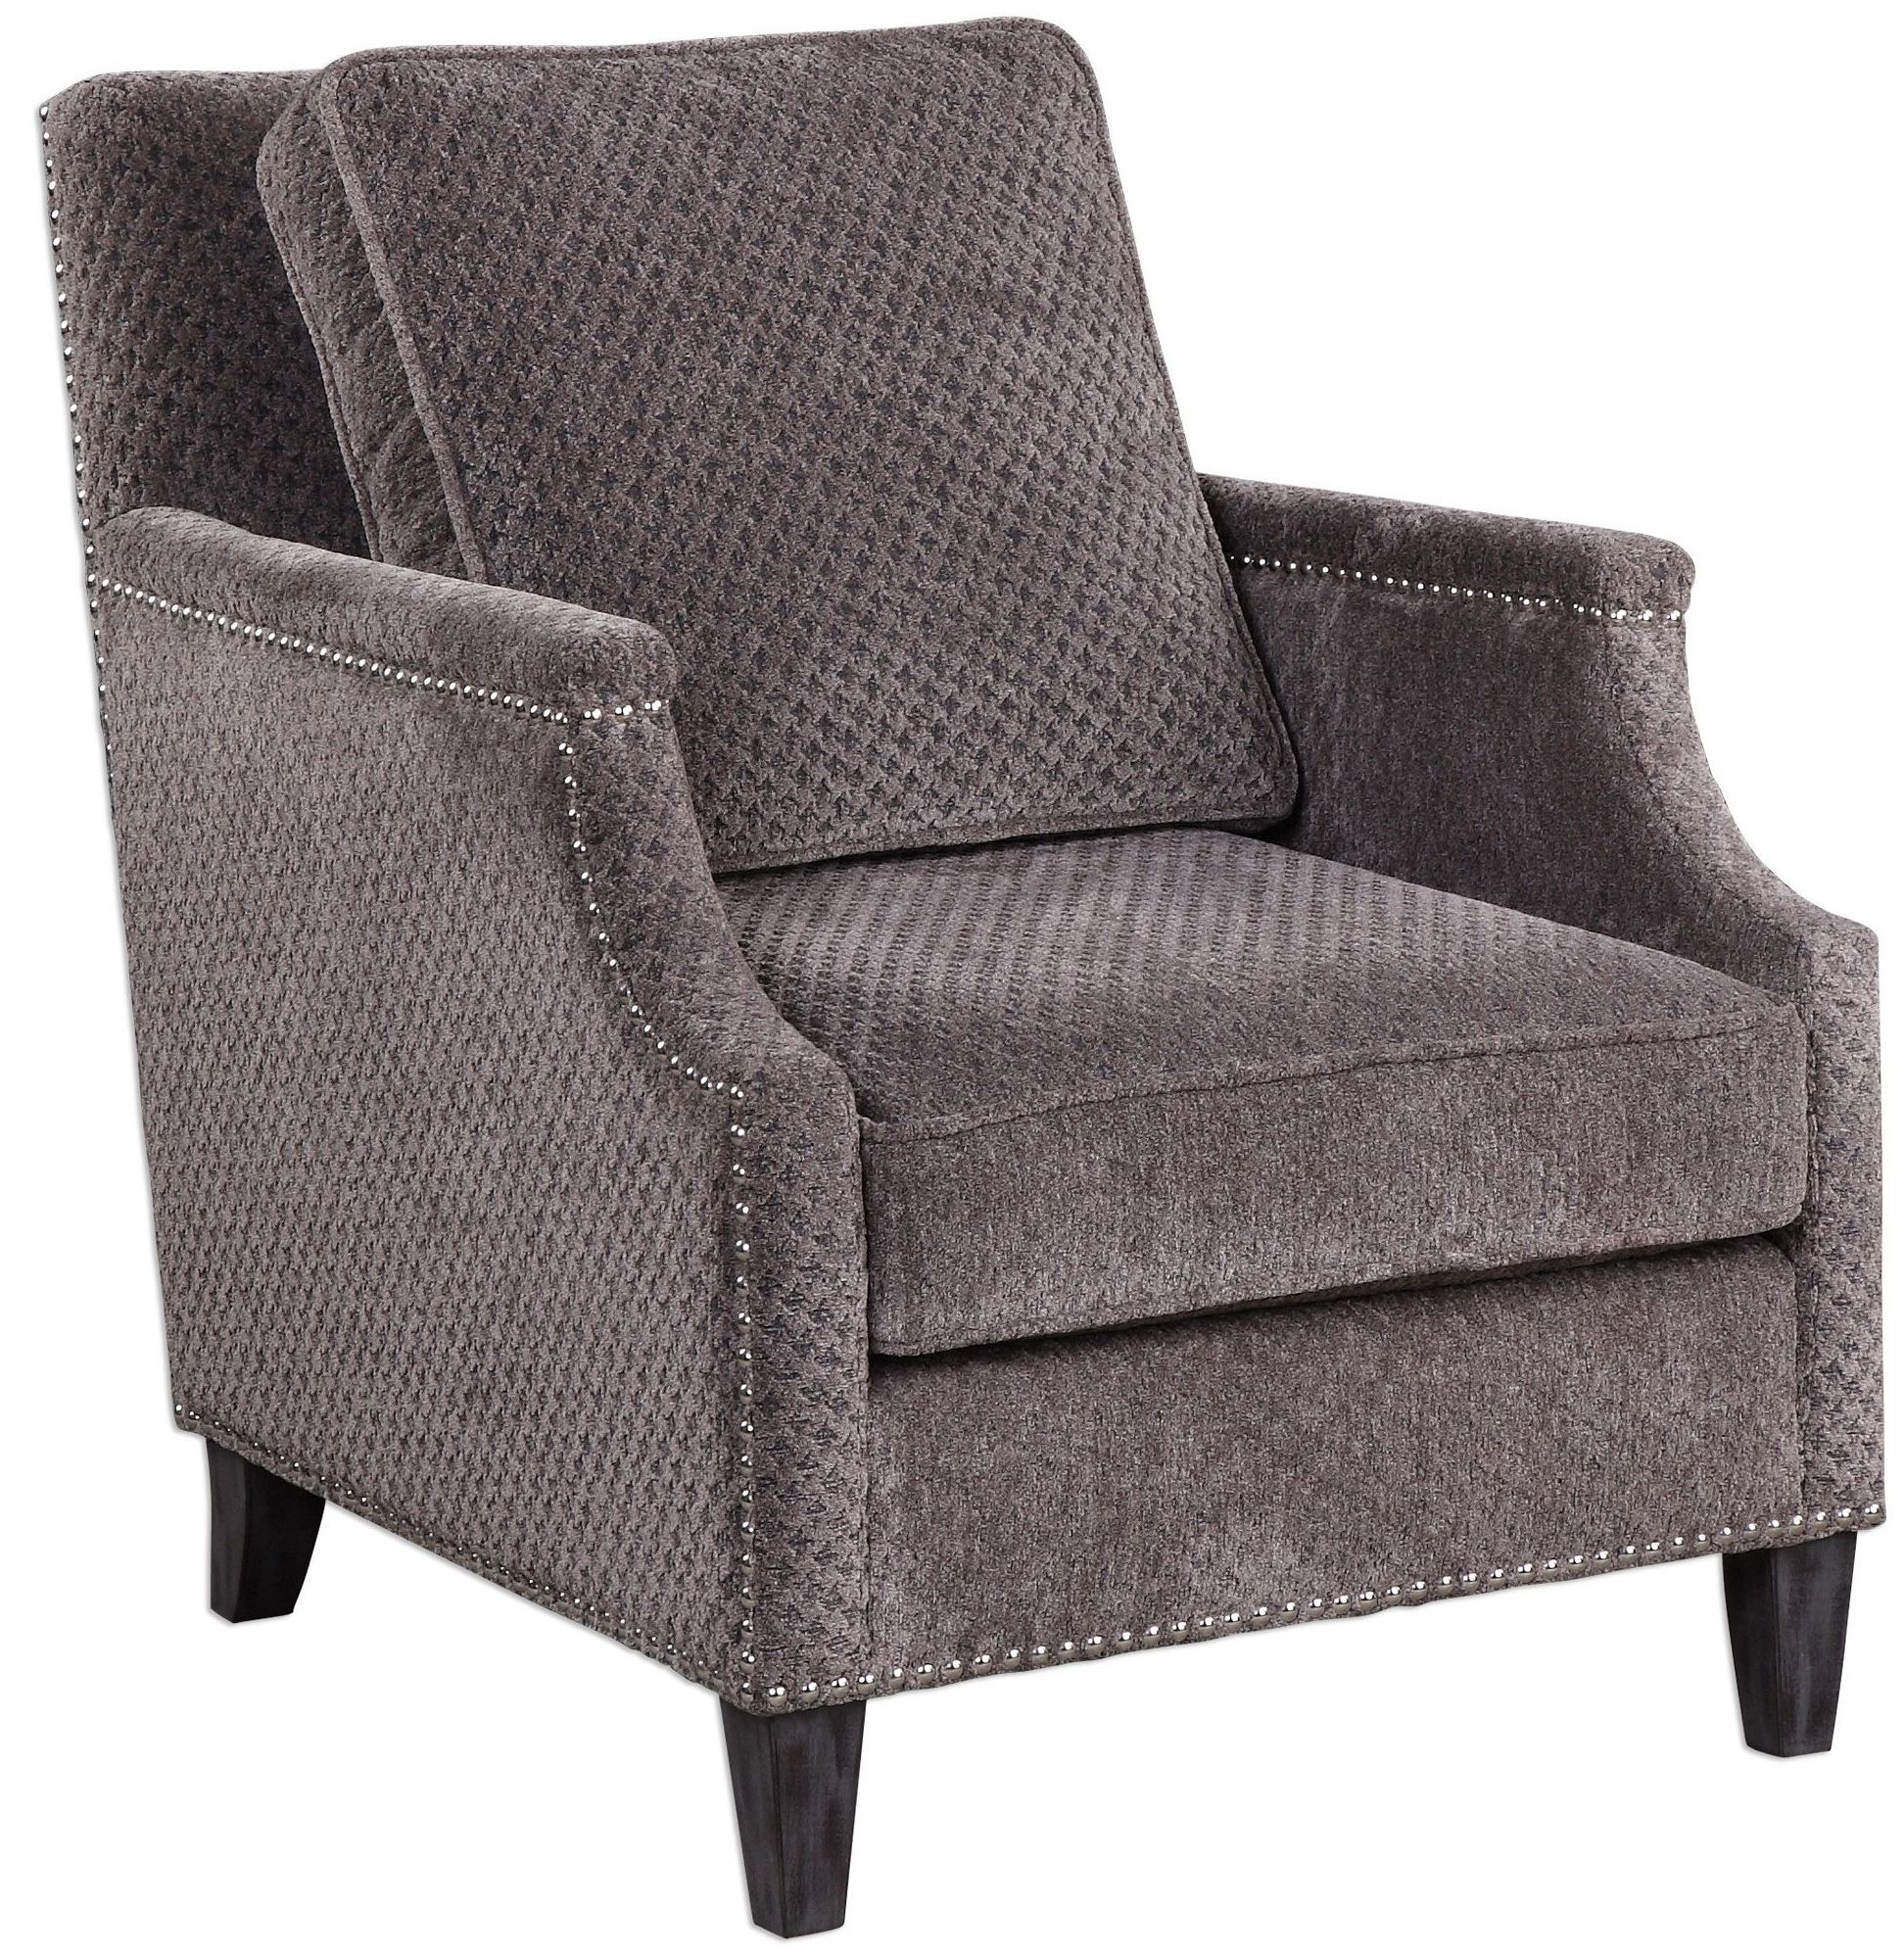 Dallen pewter gray accent chair from uttermost